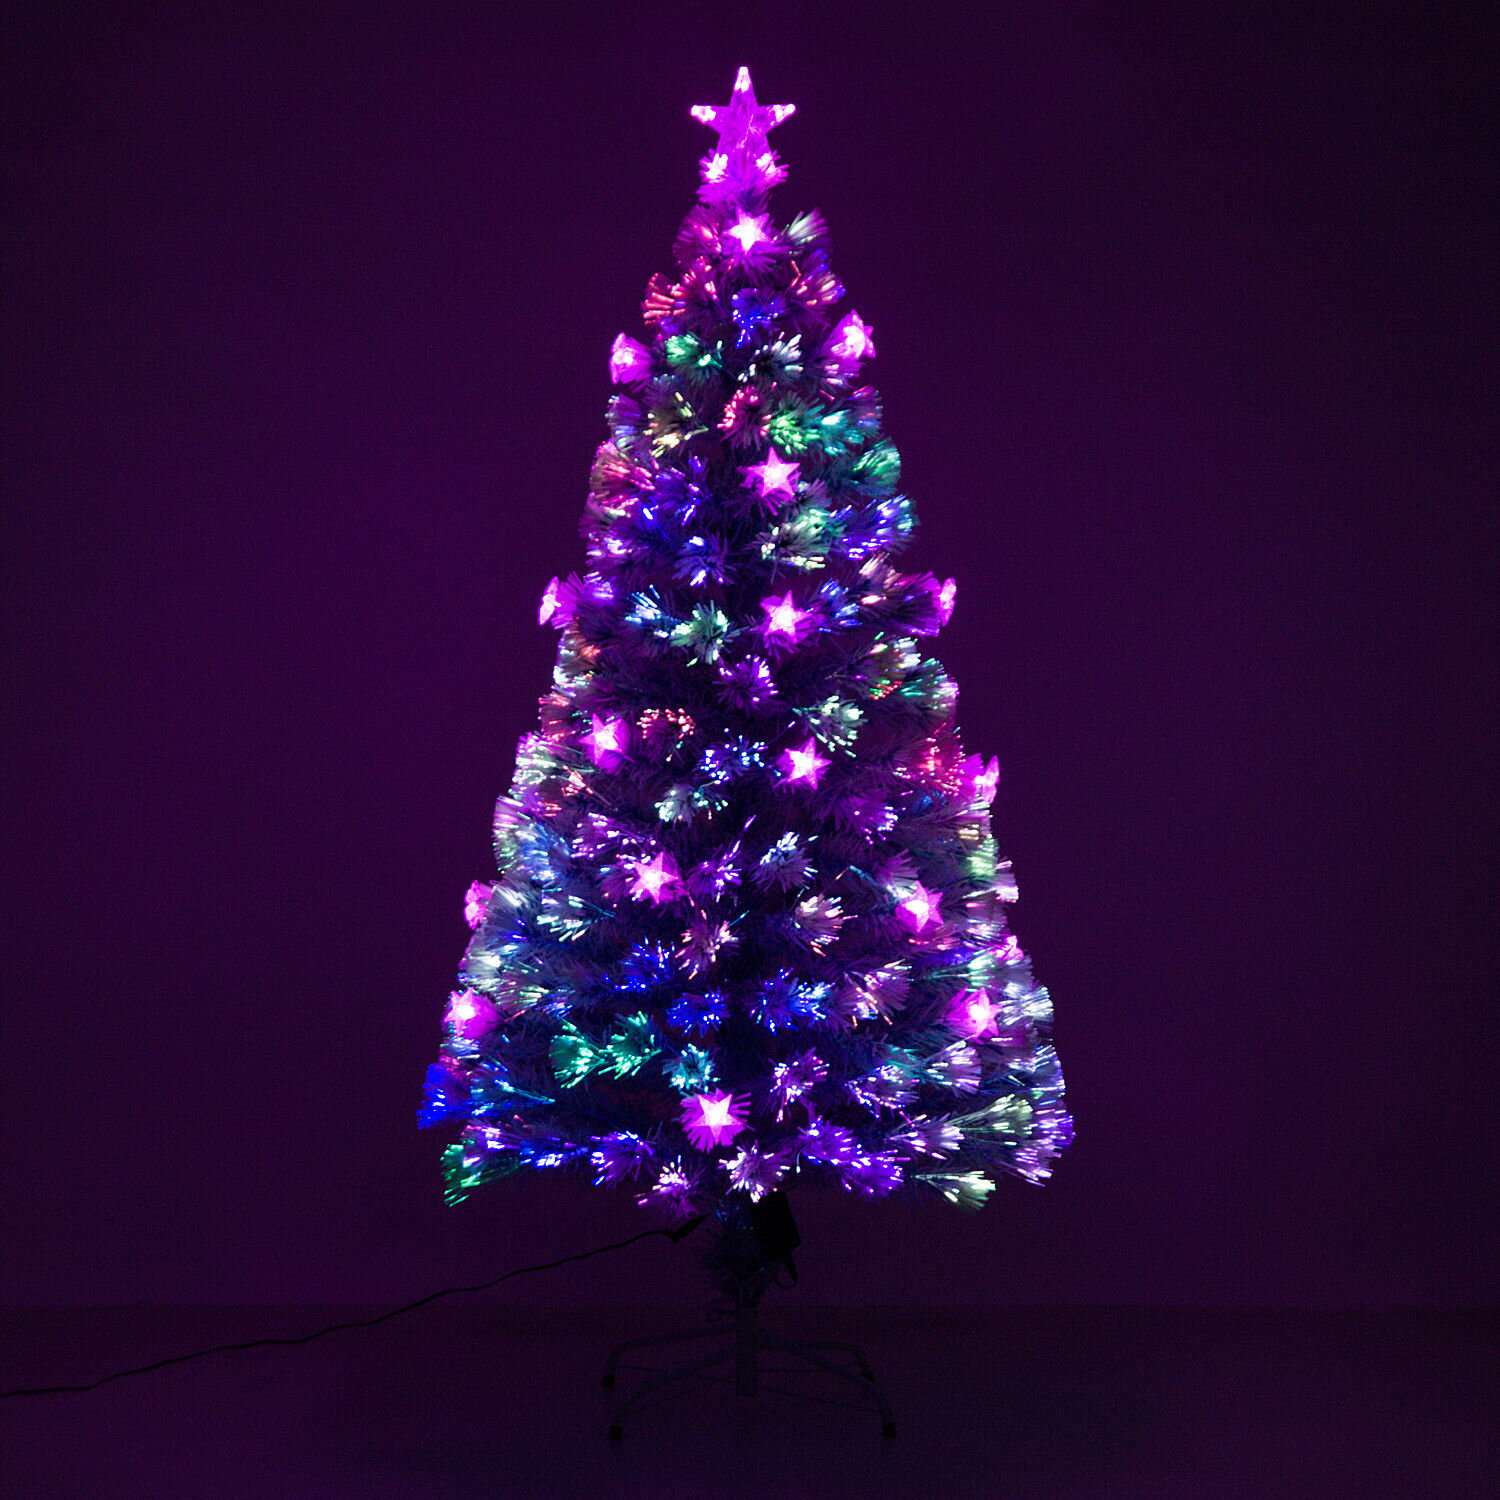 5 artificial holiday fiber optic led light up christmas tree w 8 light - Light Up Christmas Decorations